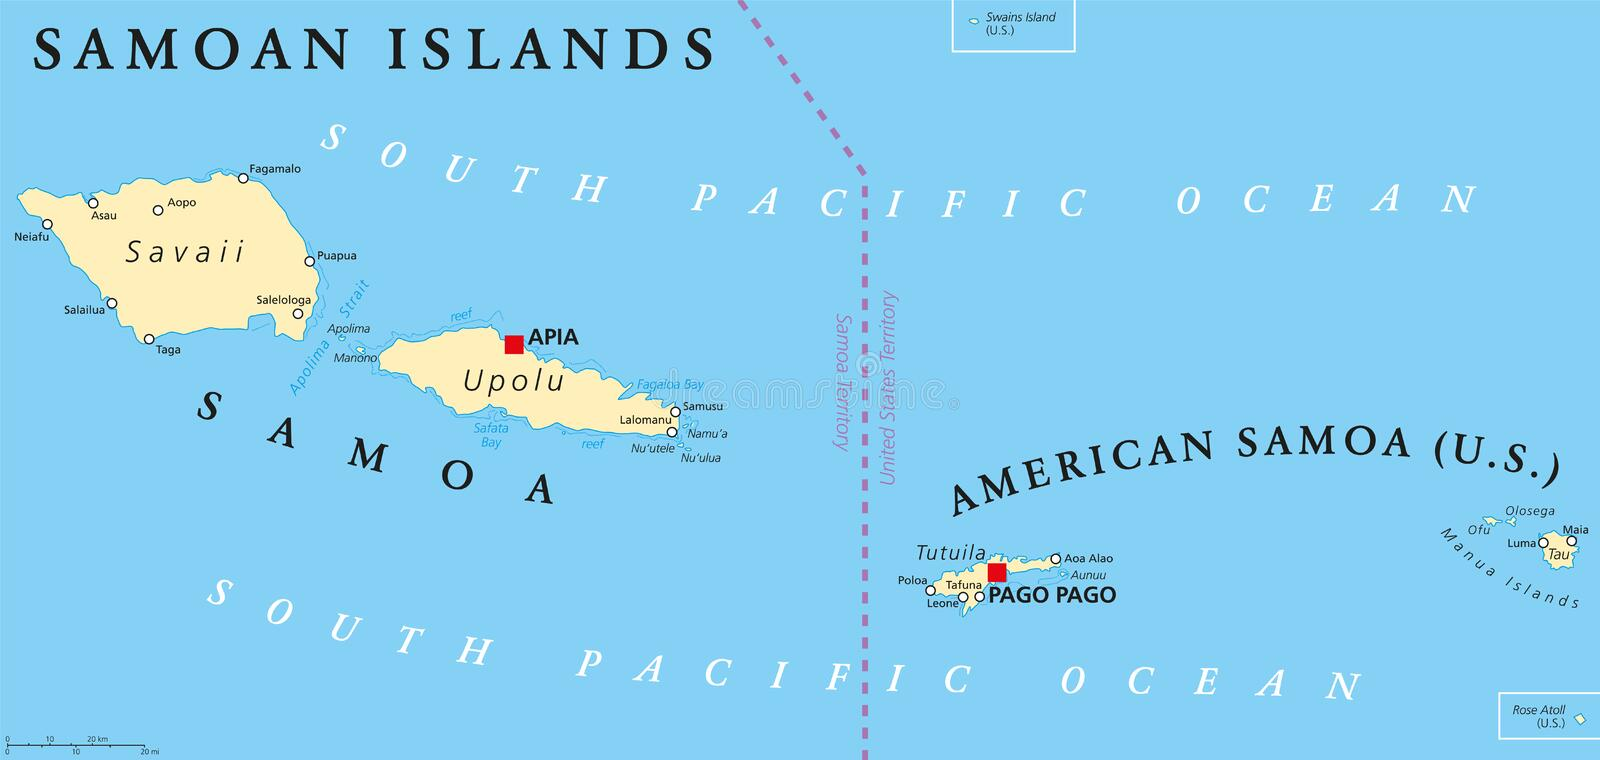 samoan islands political map with samoa formerly known as western samoa and american samoa and their capitals apia and pago pago